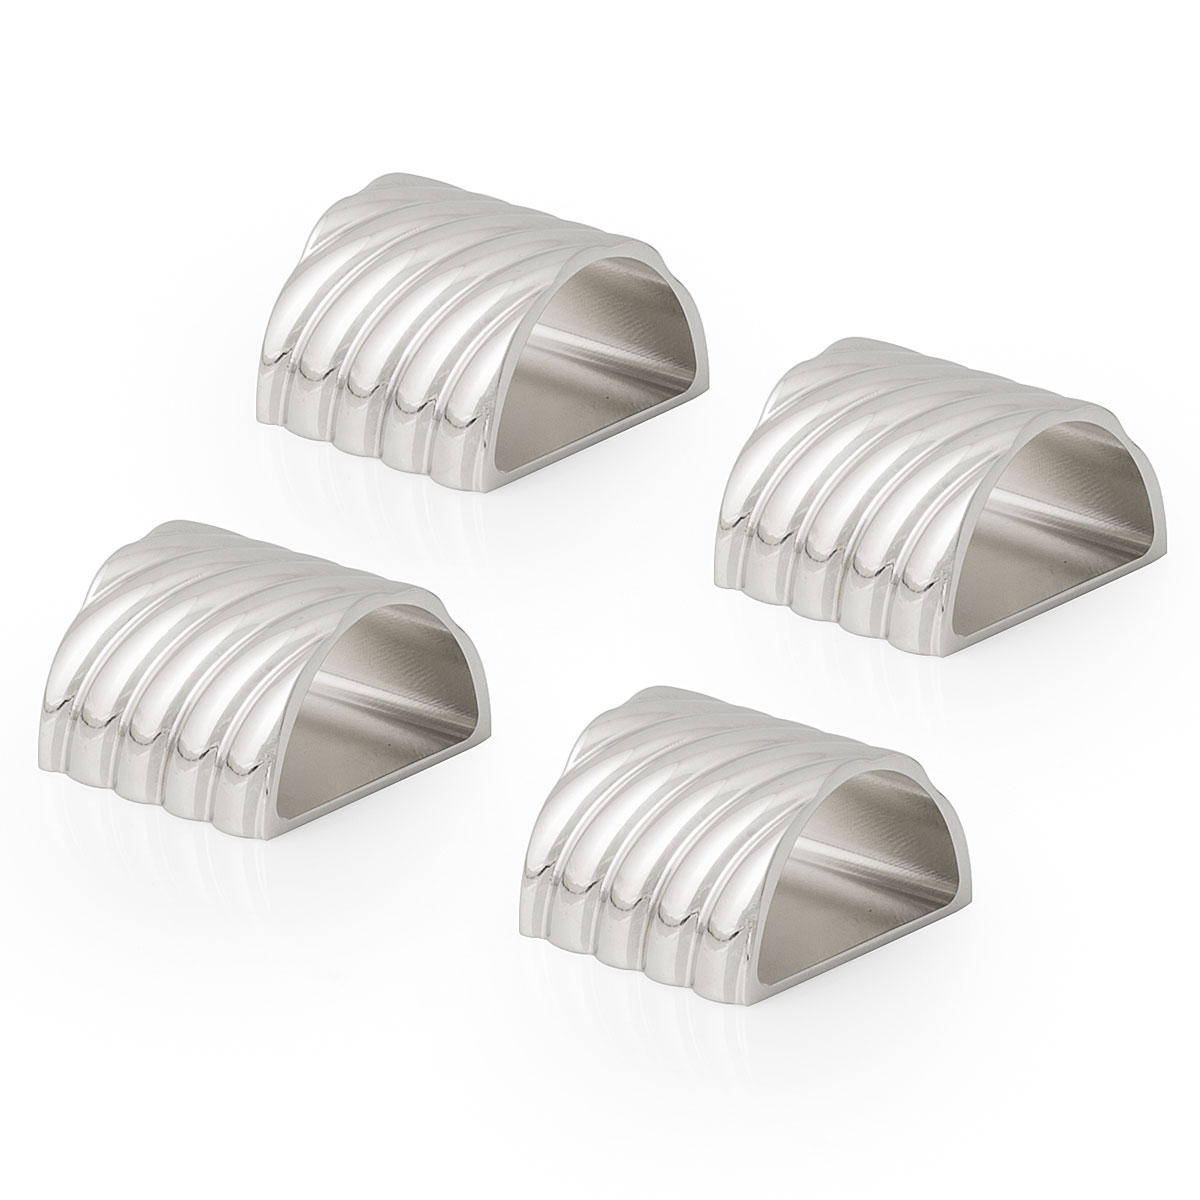 Michael Aram Twist Napkin Ring Set of 4 - Nickelplate